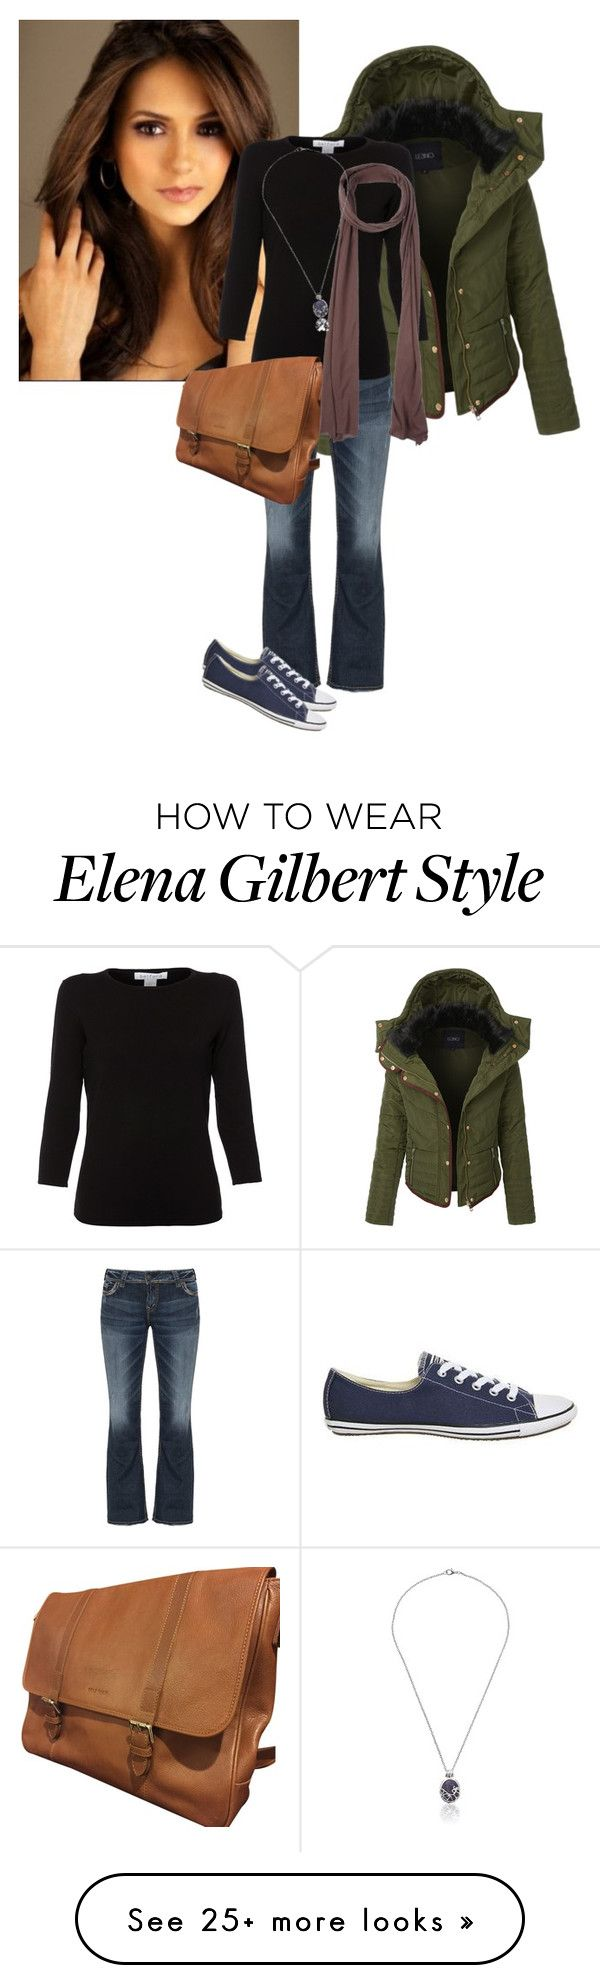 """""""Elena Gilbert TVD S1"""" by samanthadotrae on Polyvore featuring LE3NO, Silver Jeans Co., Converse, Belford, Cole Haan and Bobi"""